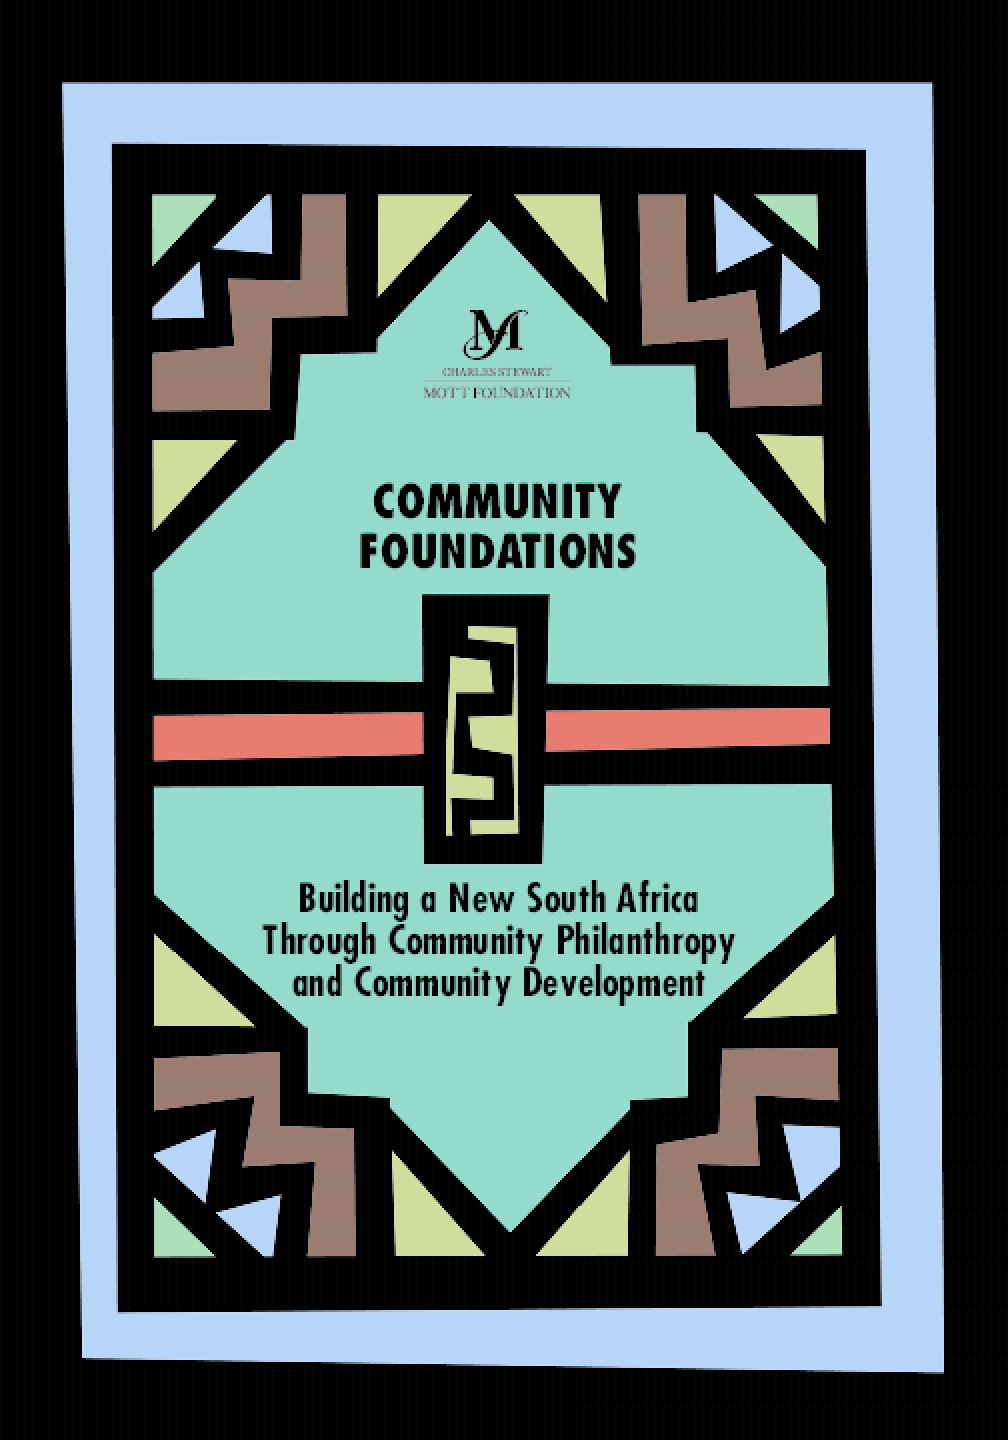 Community Foundations: Building a New South Africa Through Community Philanthropy and Community Development